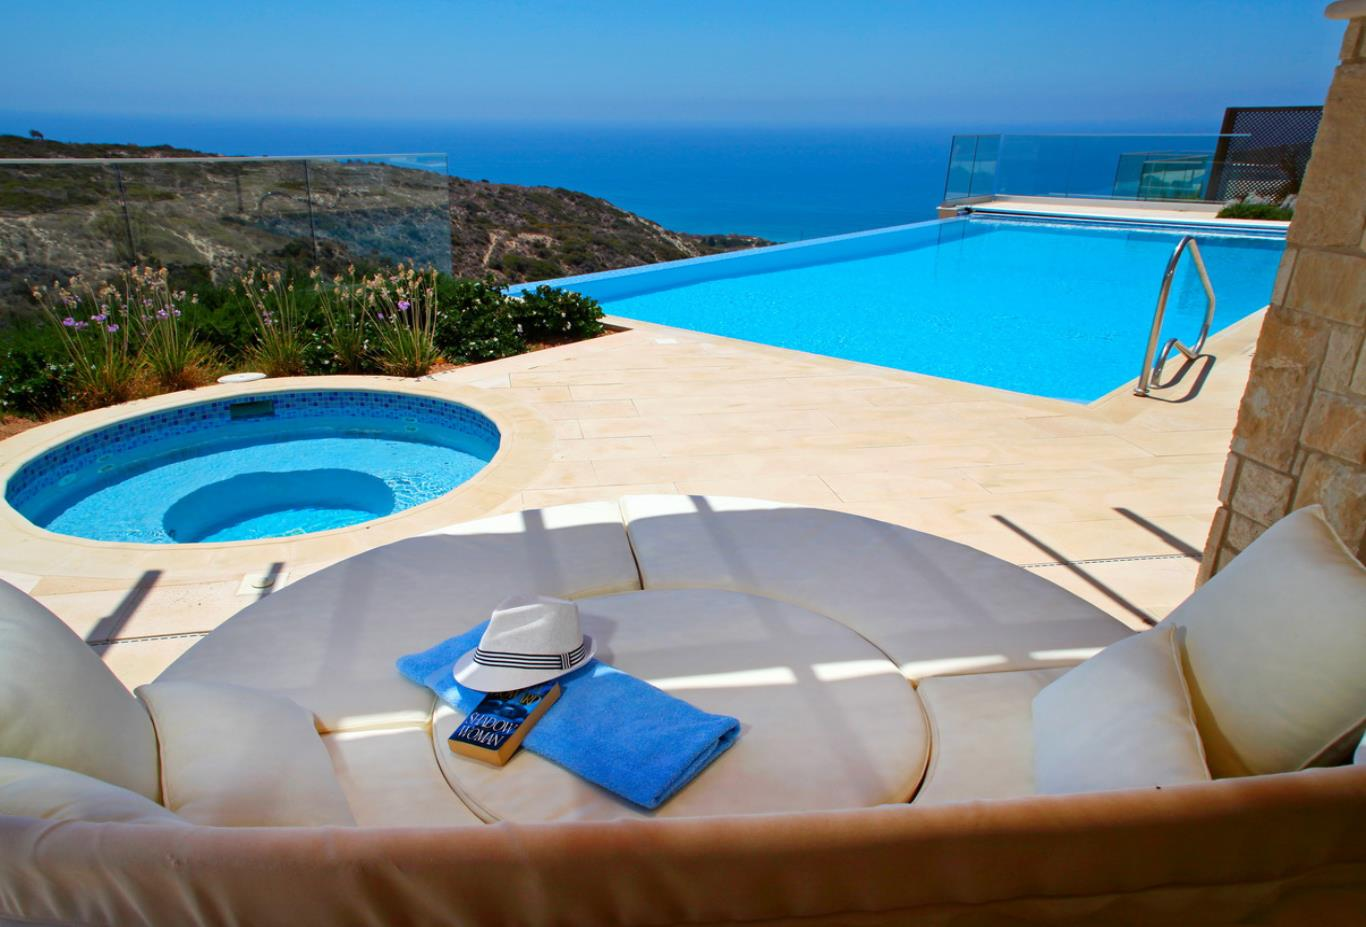 Mythos Collection 4 Bedroom Villa exterior with pools